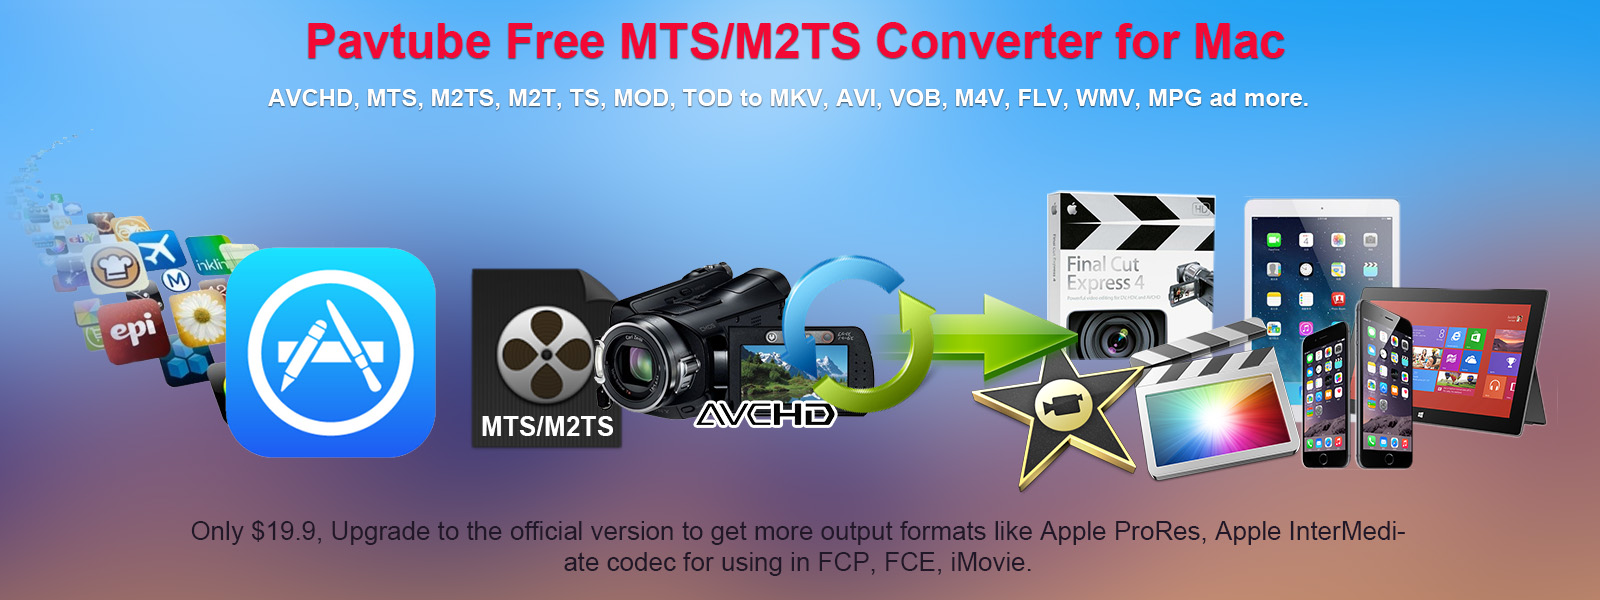 Free AVCHD Converter for Mac